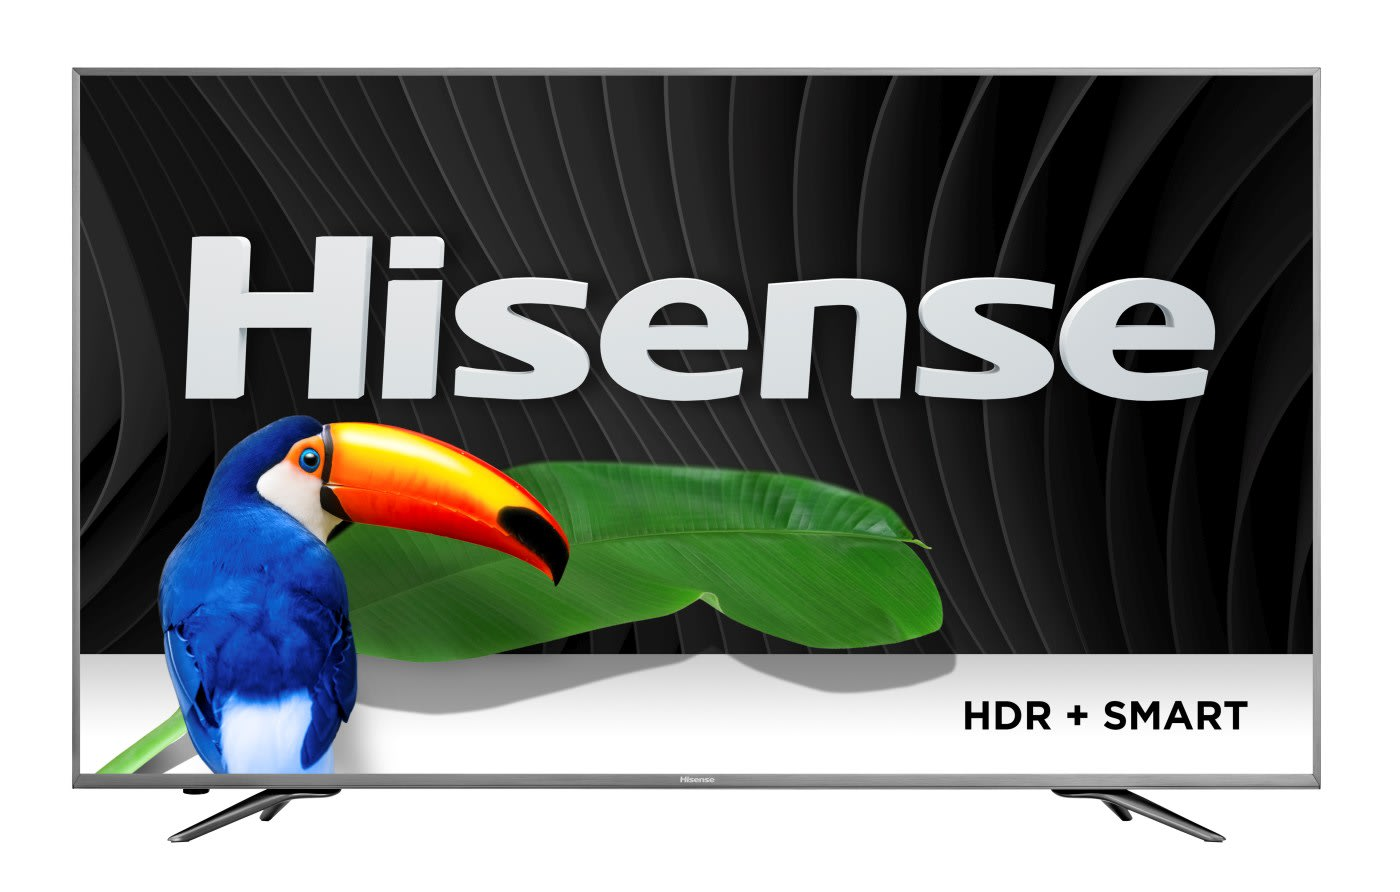 Hisense 4K TVs look for a place to fit on crowded shelves